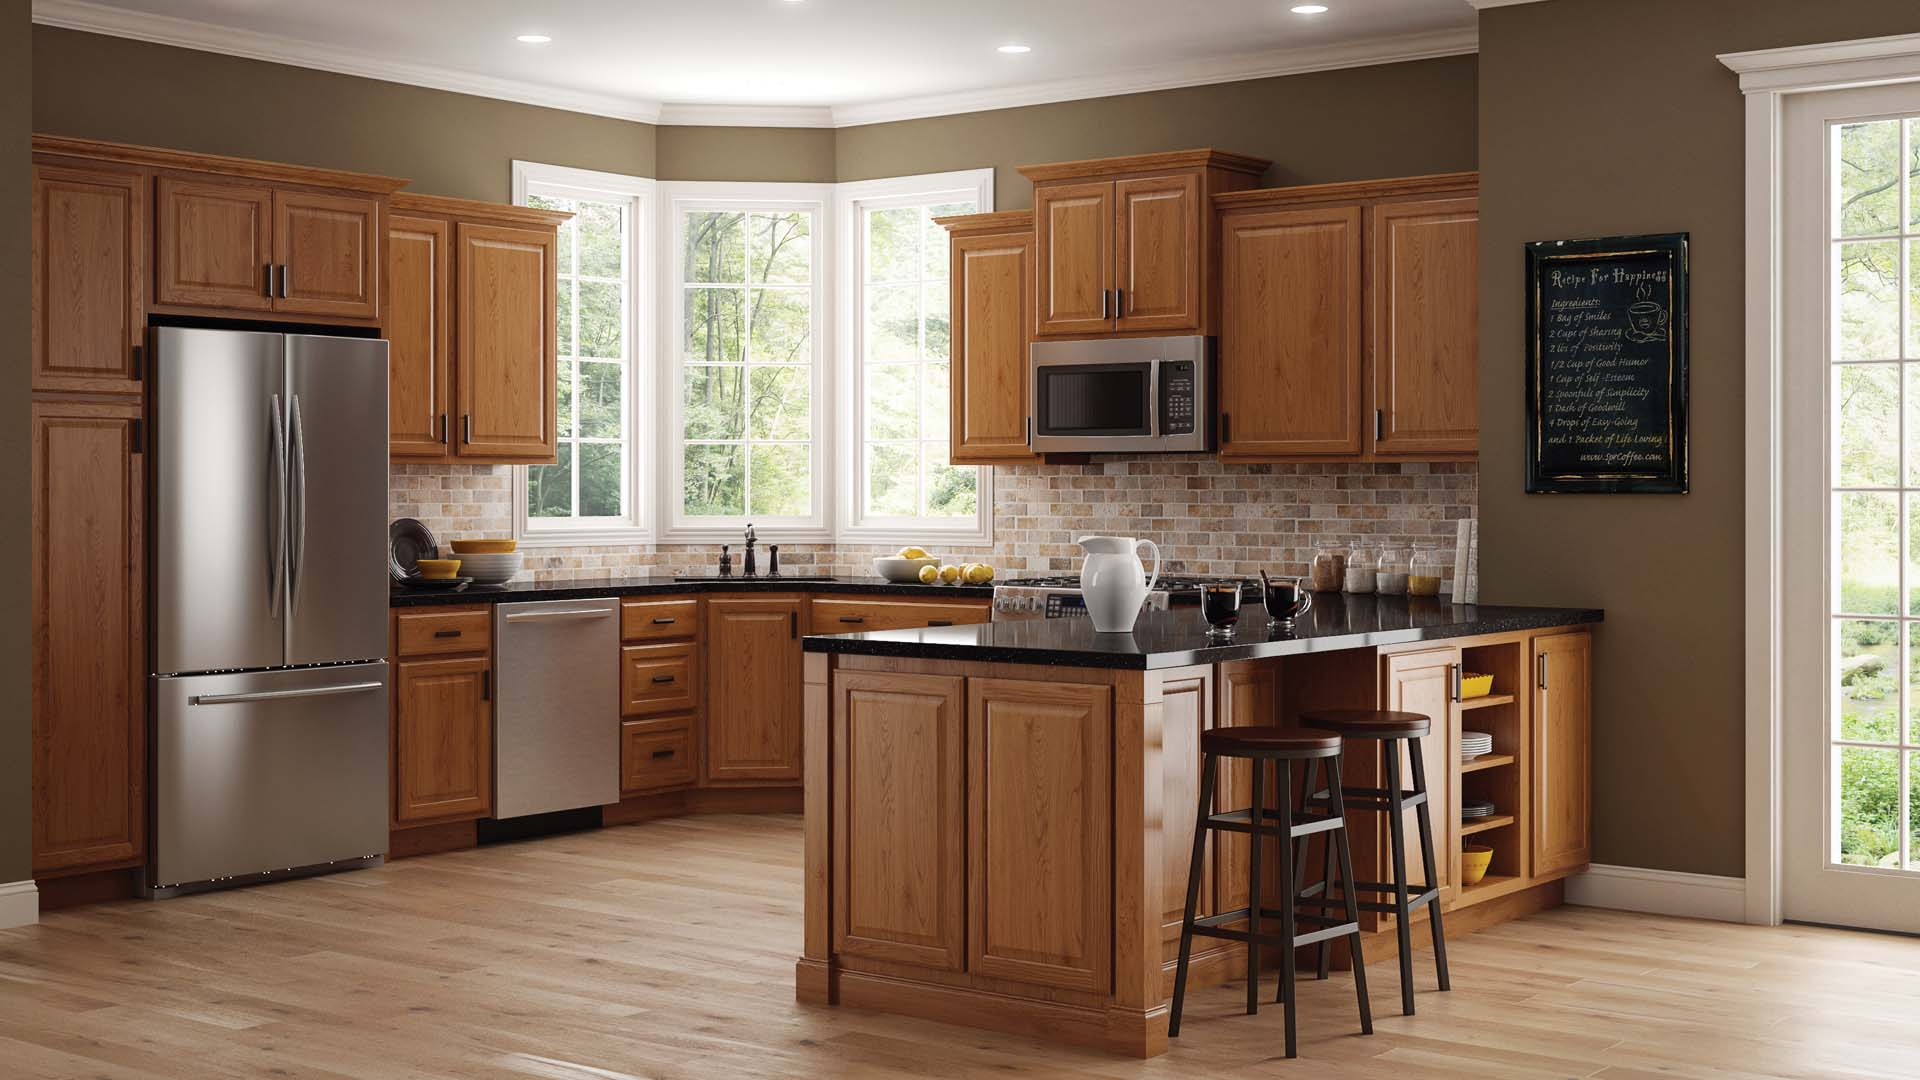 Design In Wood What To Do With Oak Cabinets: Hampton Wall Kitchen Cabinets In Medium Oak